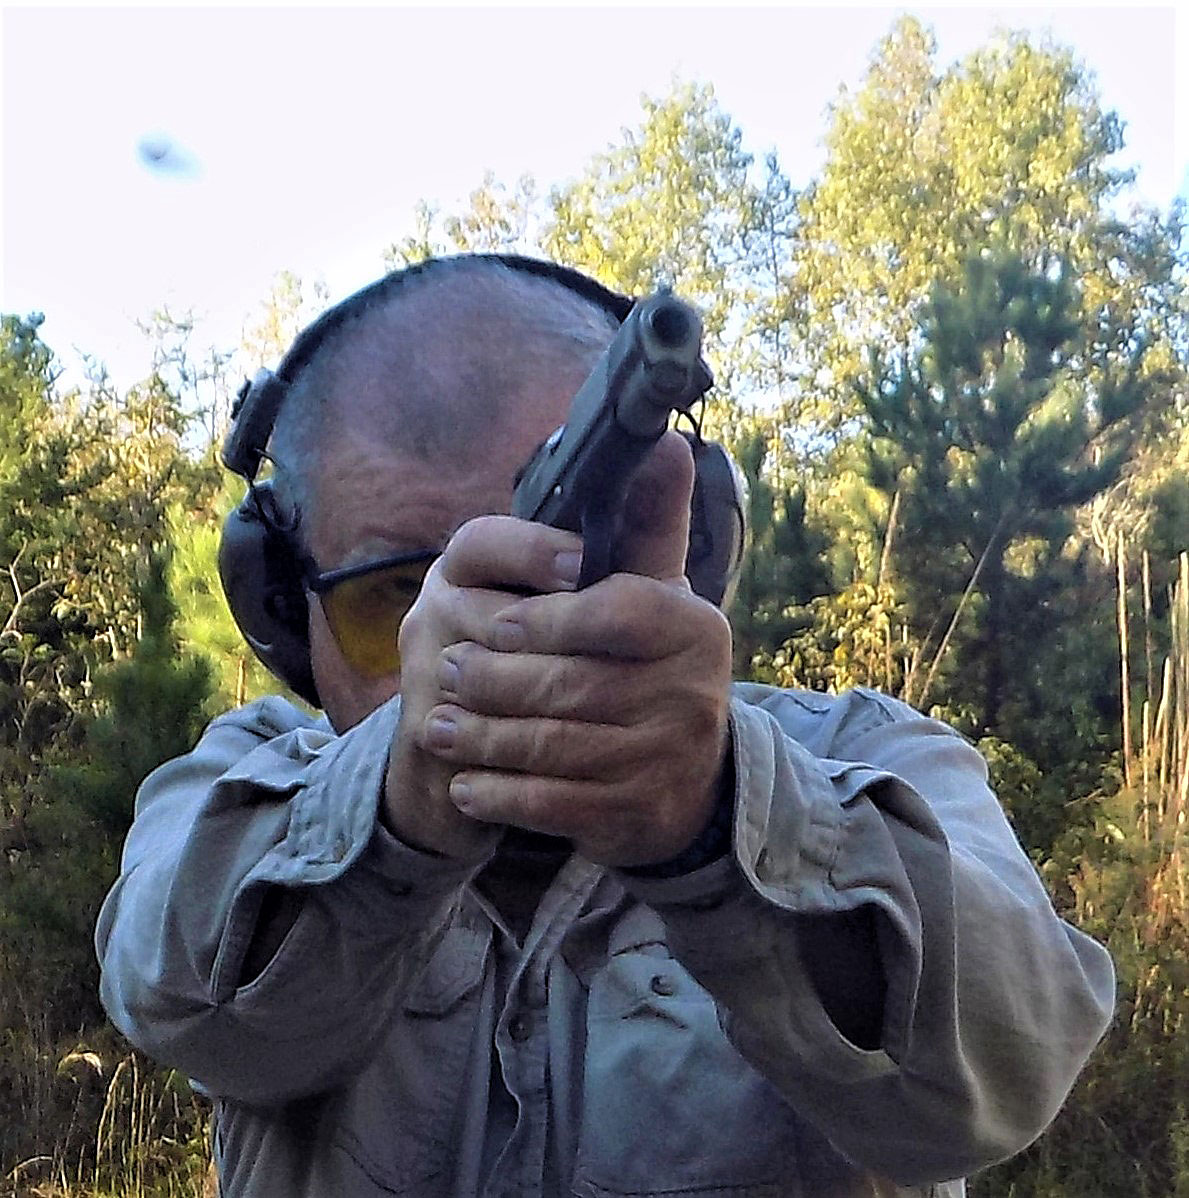 Bob Campbell controlling a 1911 pistol through recoil